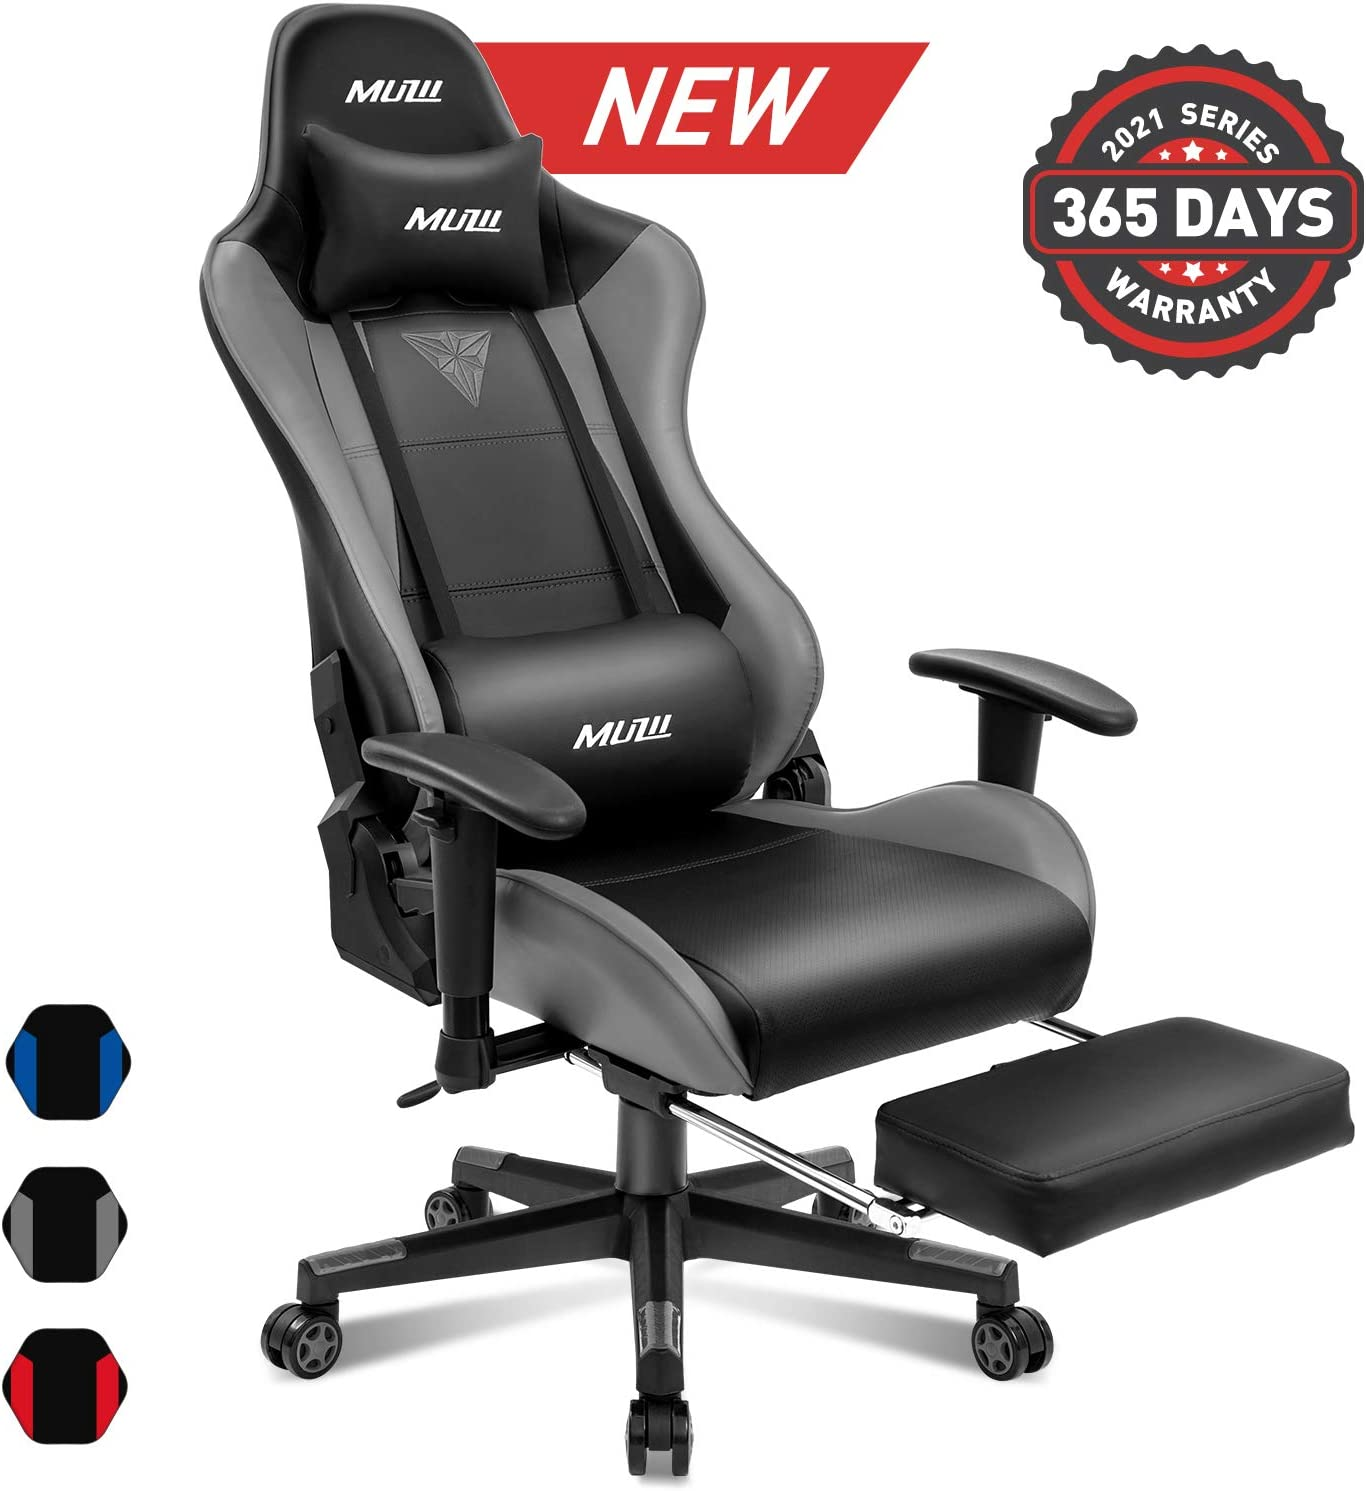 Muzii Gaming Chair with Footrest, High-Back PU Leather Office Chair with Headrest and Adjustable Lumbar Support,Ergonomic Computer Swivel Chair for Teens and Adults-Grey(001)